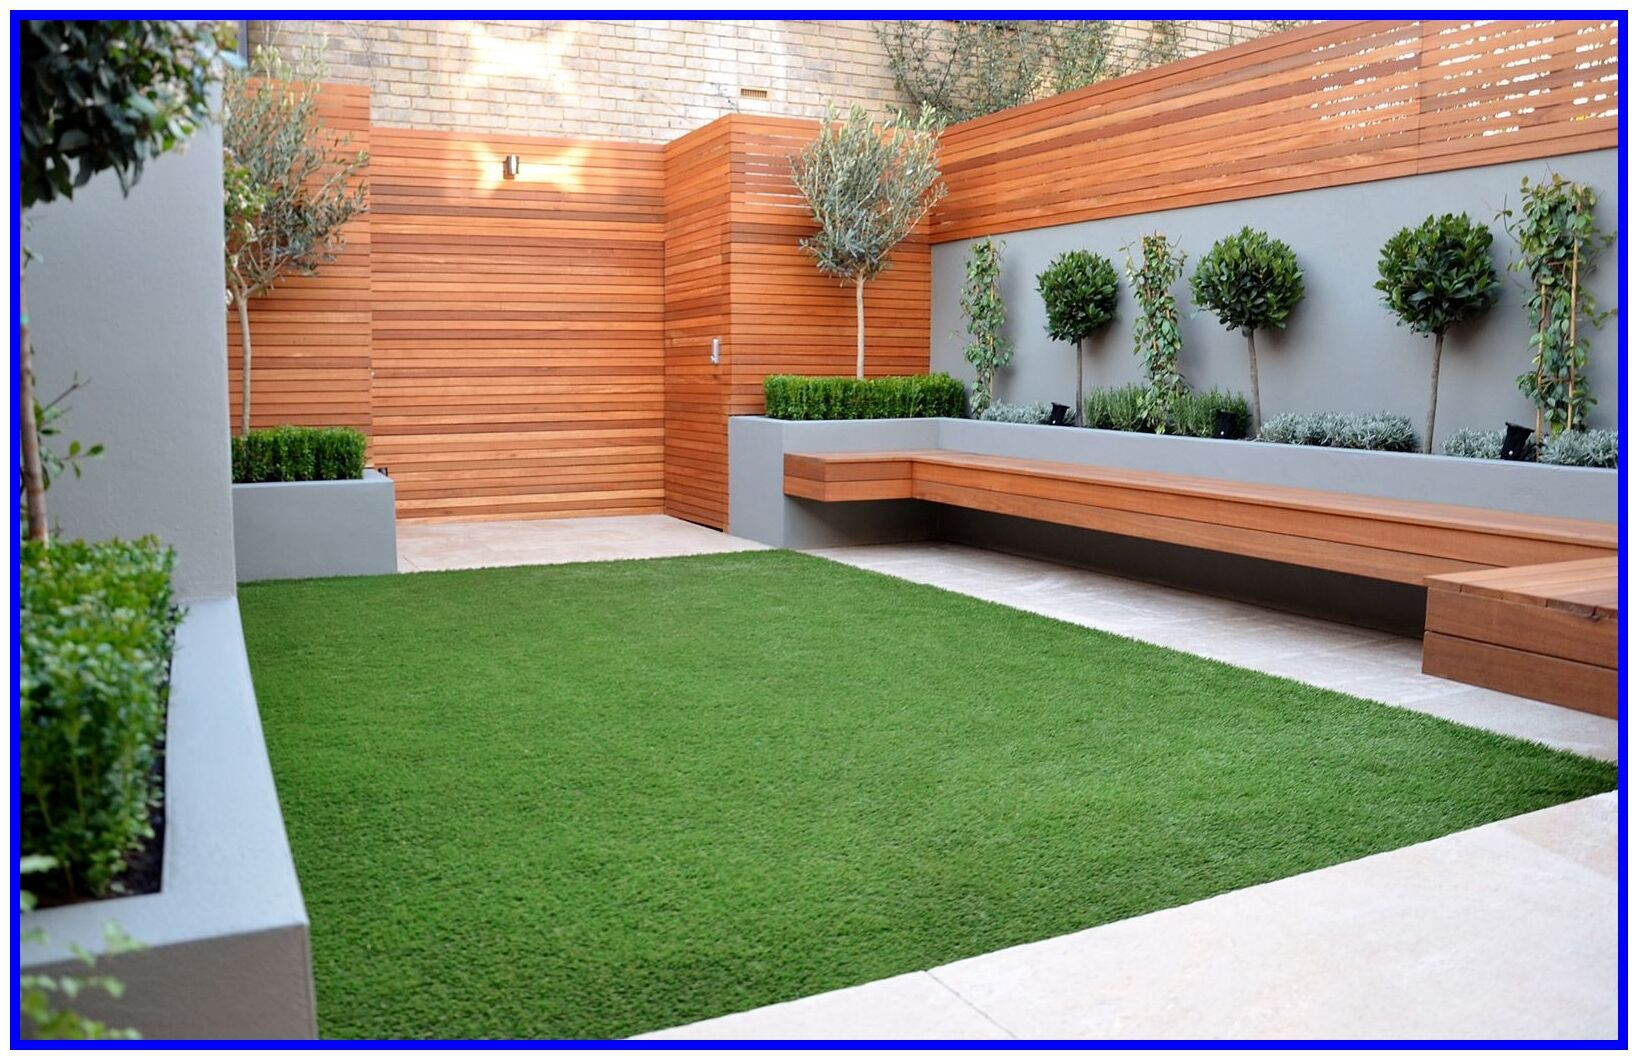 6 reference of patio ideas on a budget uk in 6  Modern garden